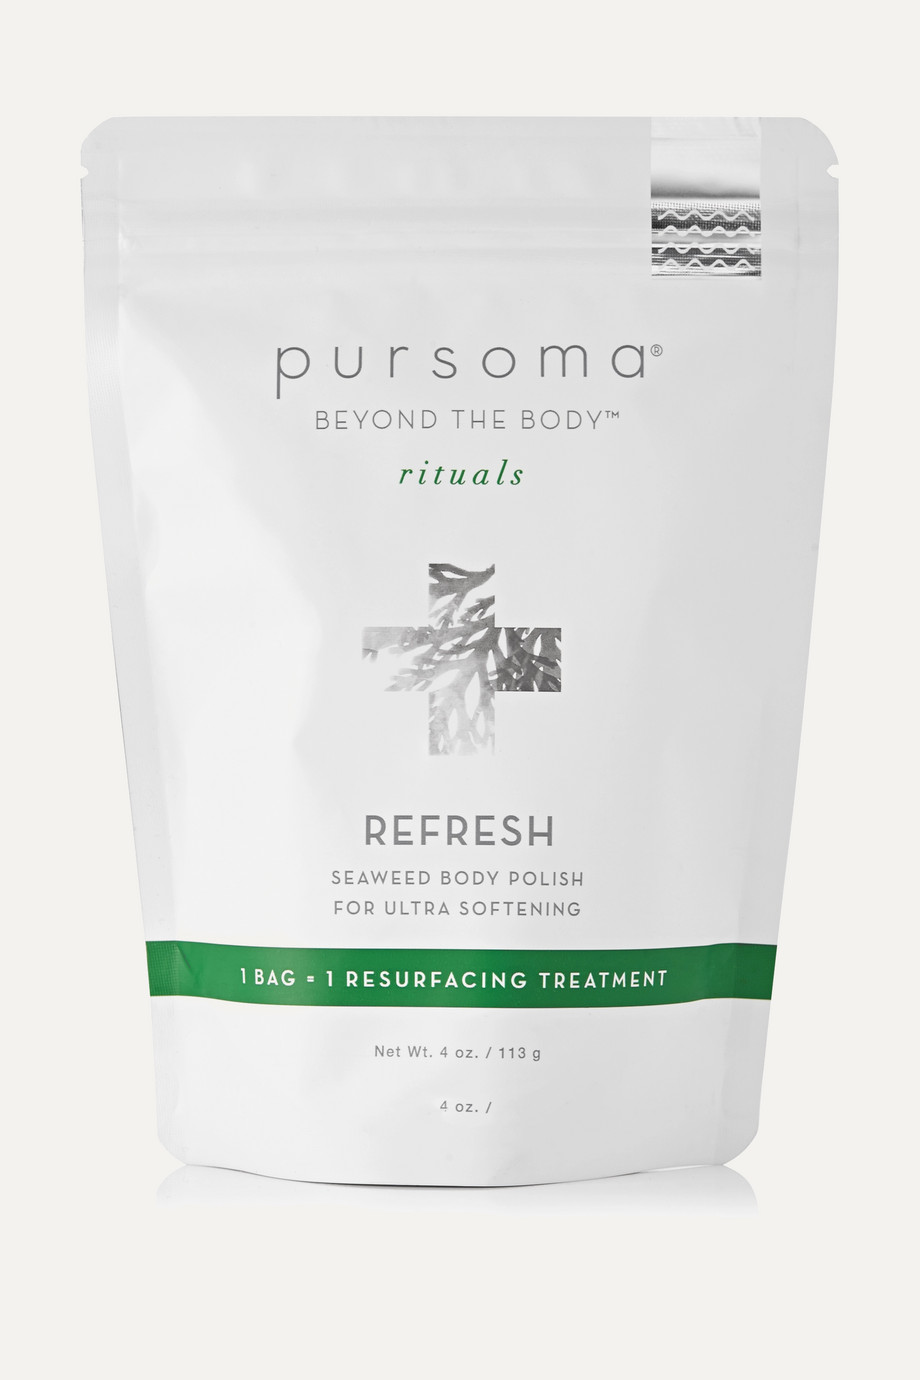 Pursoma Refresh Seaweed Body Polish, 113g